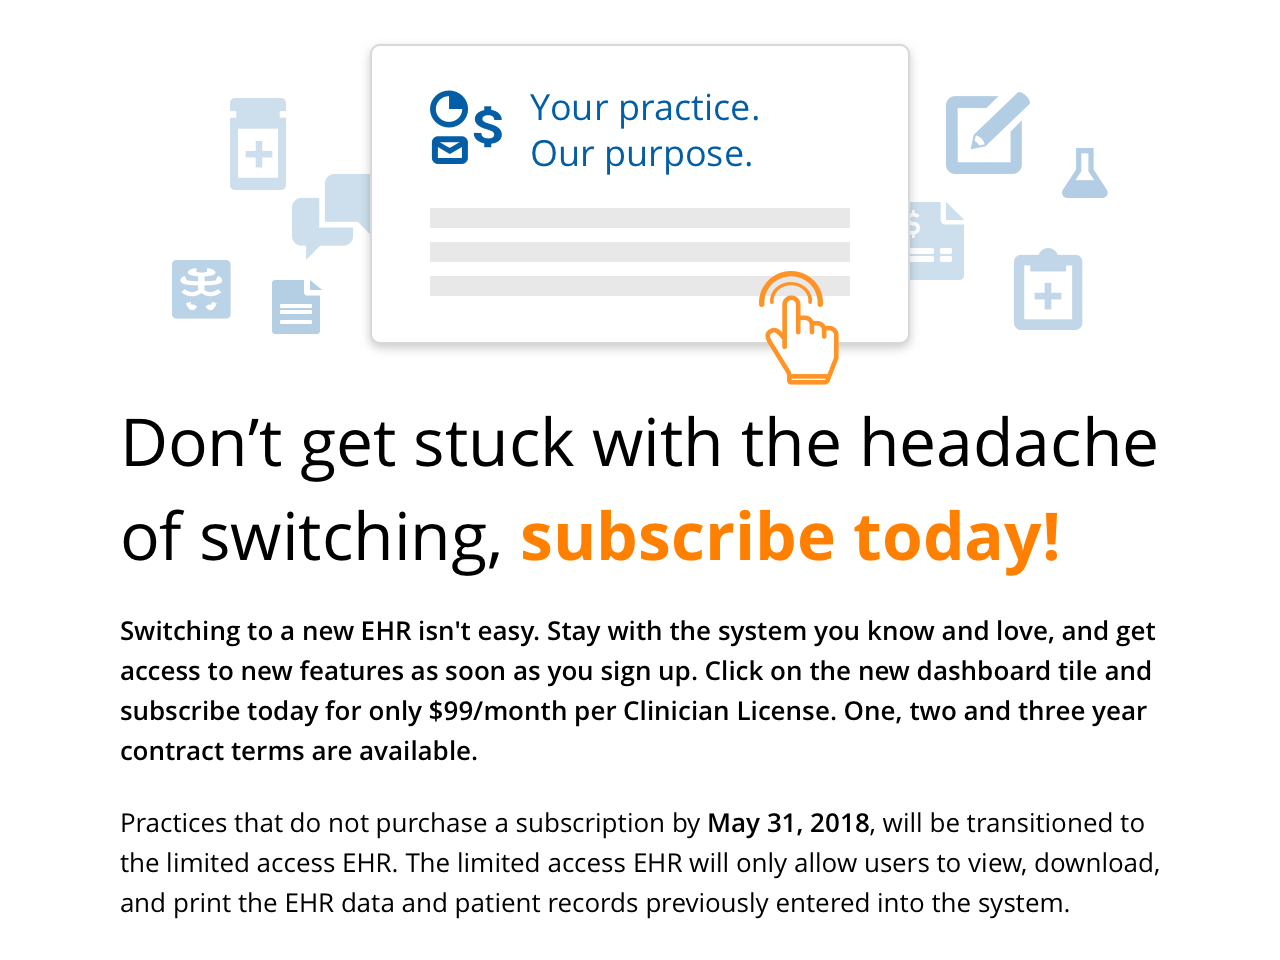 Switching to a new EHR isn't easy. Stay with the system you know and love, and get access to new features as soon as you sign up. Click on the new dashboard tile and subscribe today for only $99/month per Clinician License. One, two and three year contract terms are available.